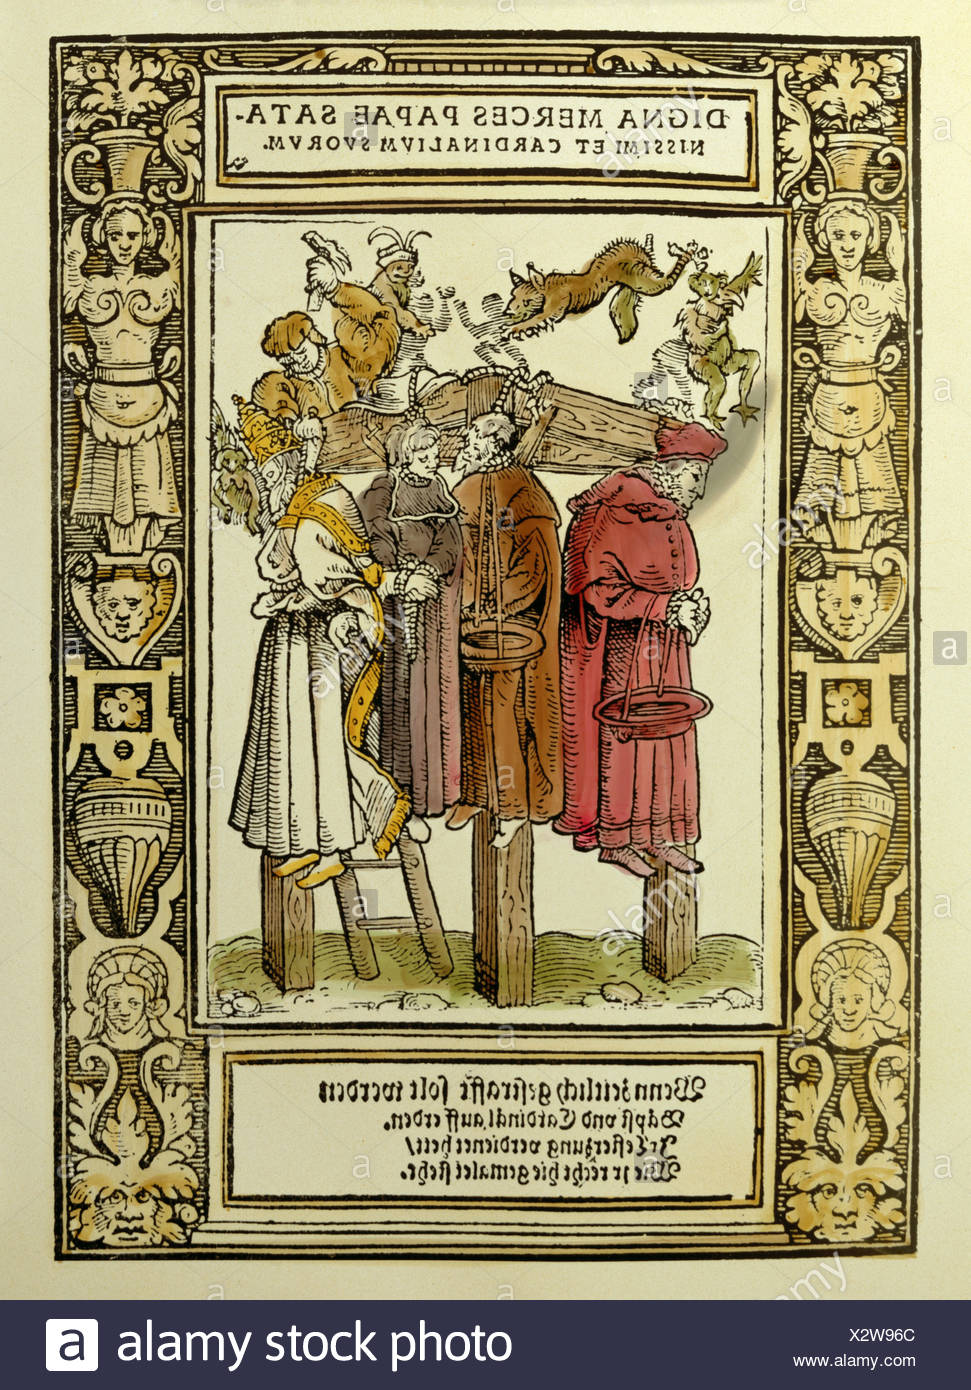 Luther, Martin, 10.11.1483 - 18.2.1546, German reformer, works, 'Against the Papacy at Rome, Founded by the Devil', title,  Wittenberg, 1545, coloured title, private collection, , Additional-Rights-Clearances-NA - Stock Image